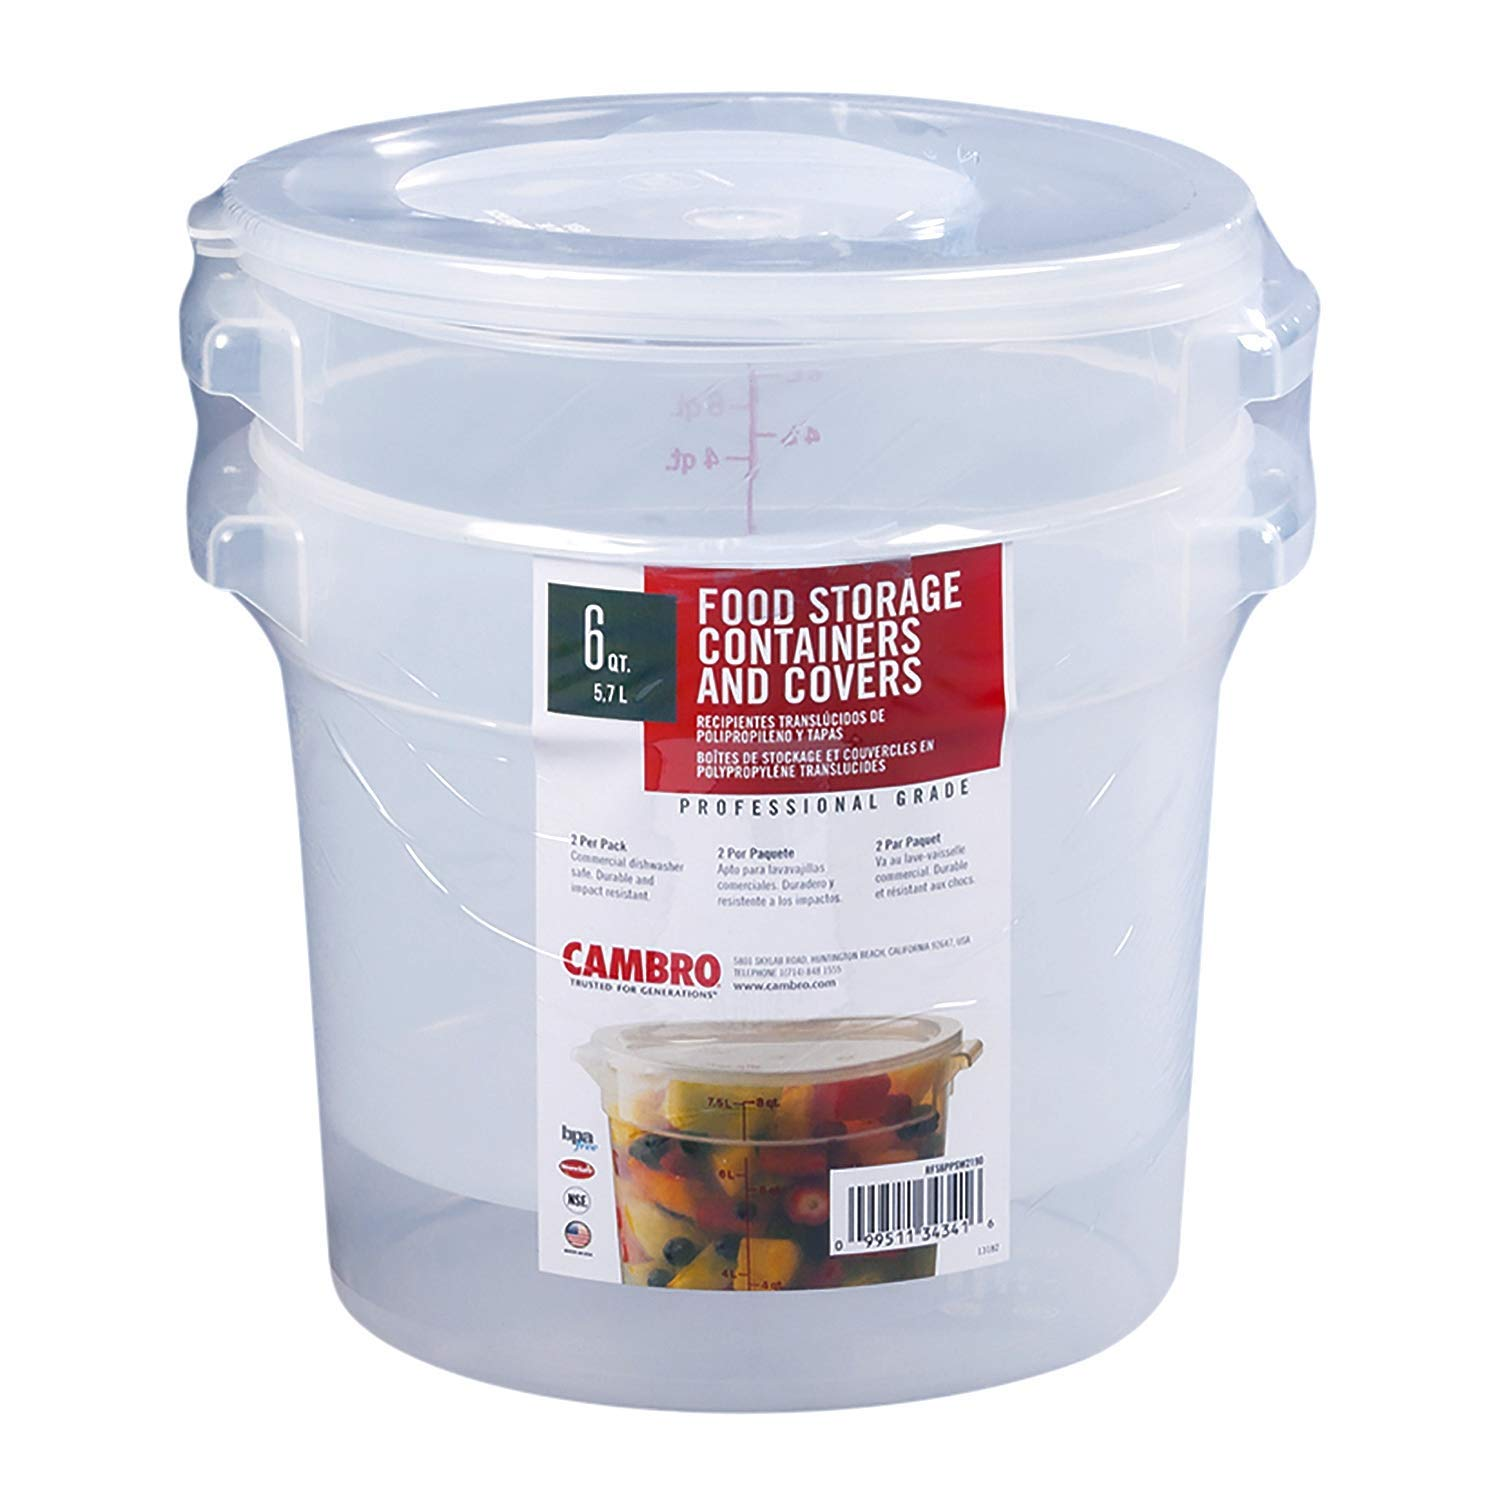 Cambro Round Translucent Container with Lid (6 qt, 2 pk.)